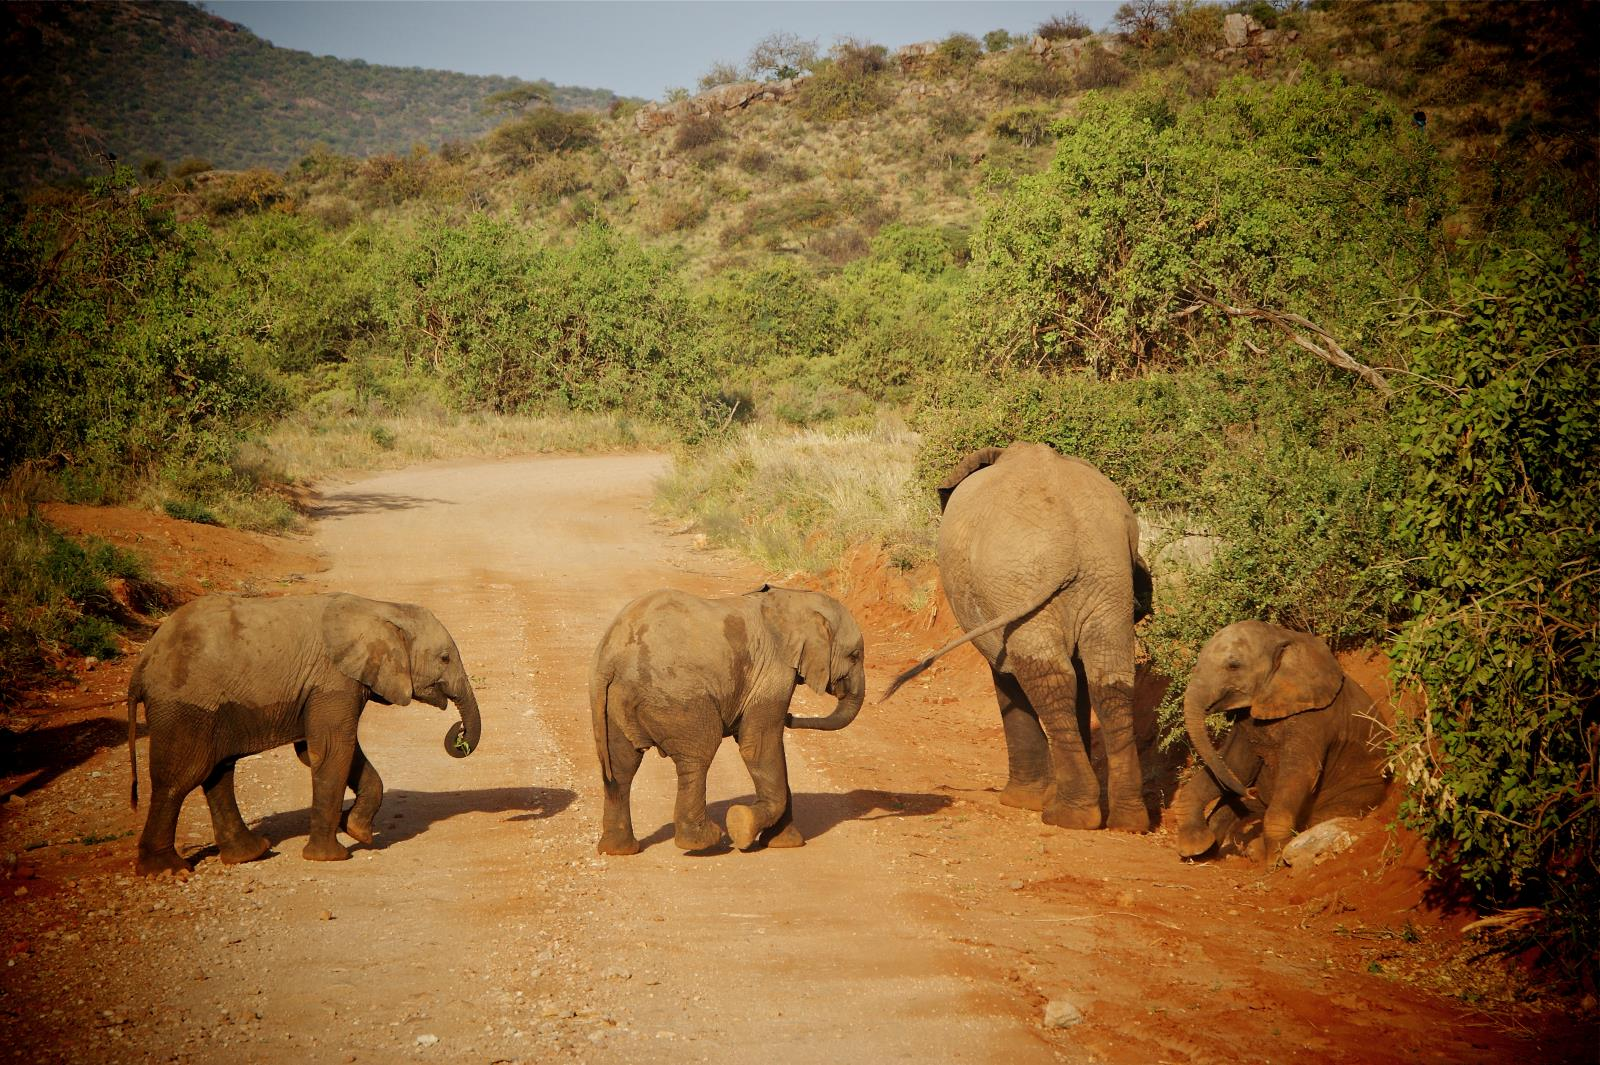 Safari and Elephant Encounters at Samburu National Park, Kenya